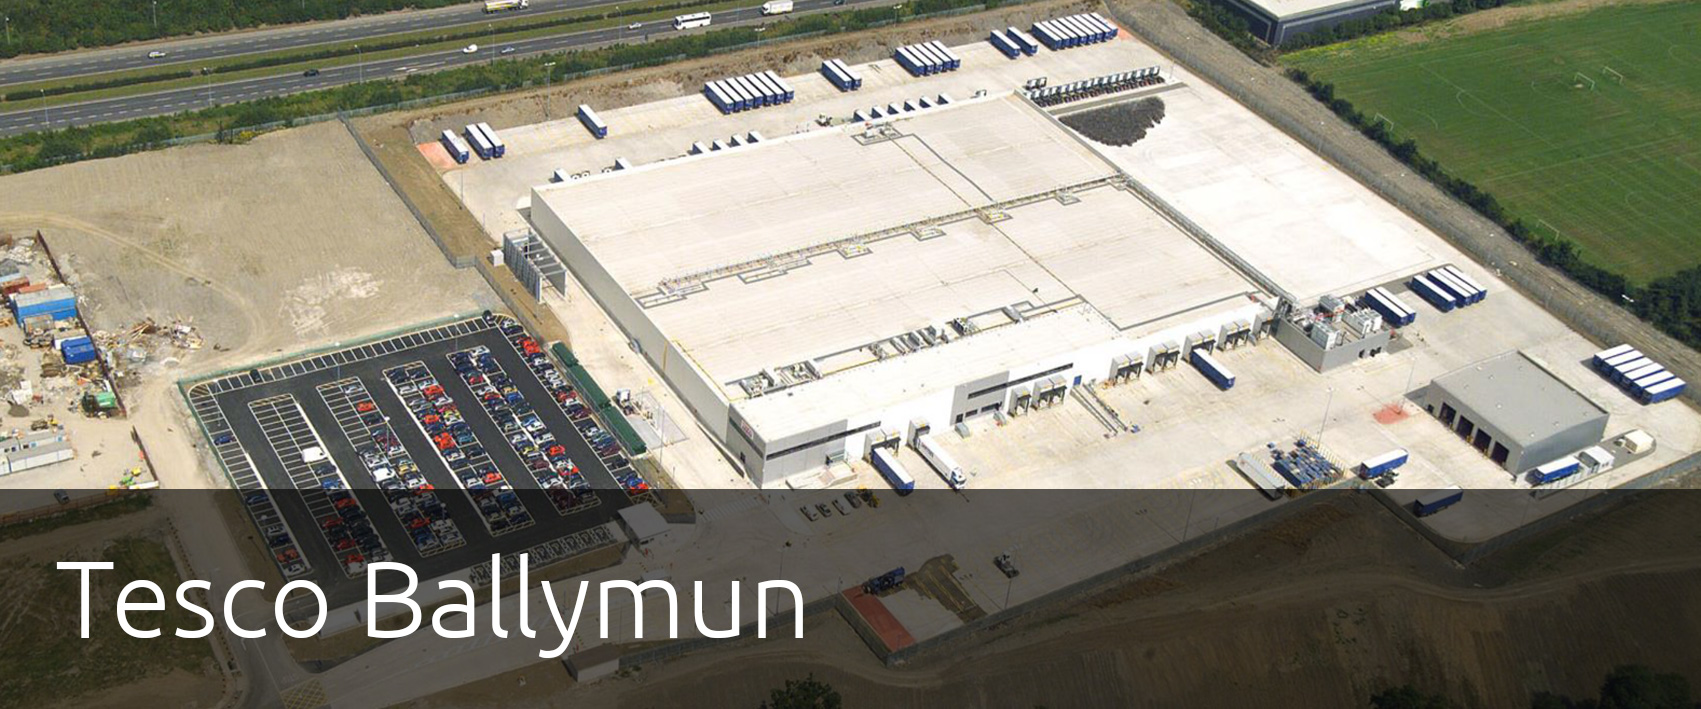 Tesco Ballymun by Mannings